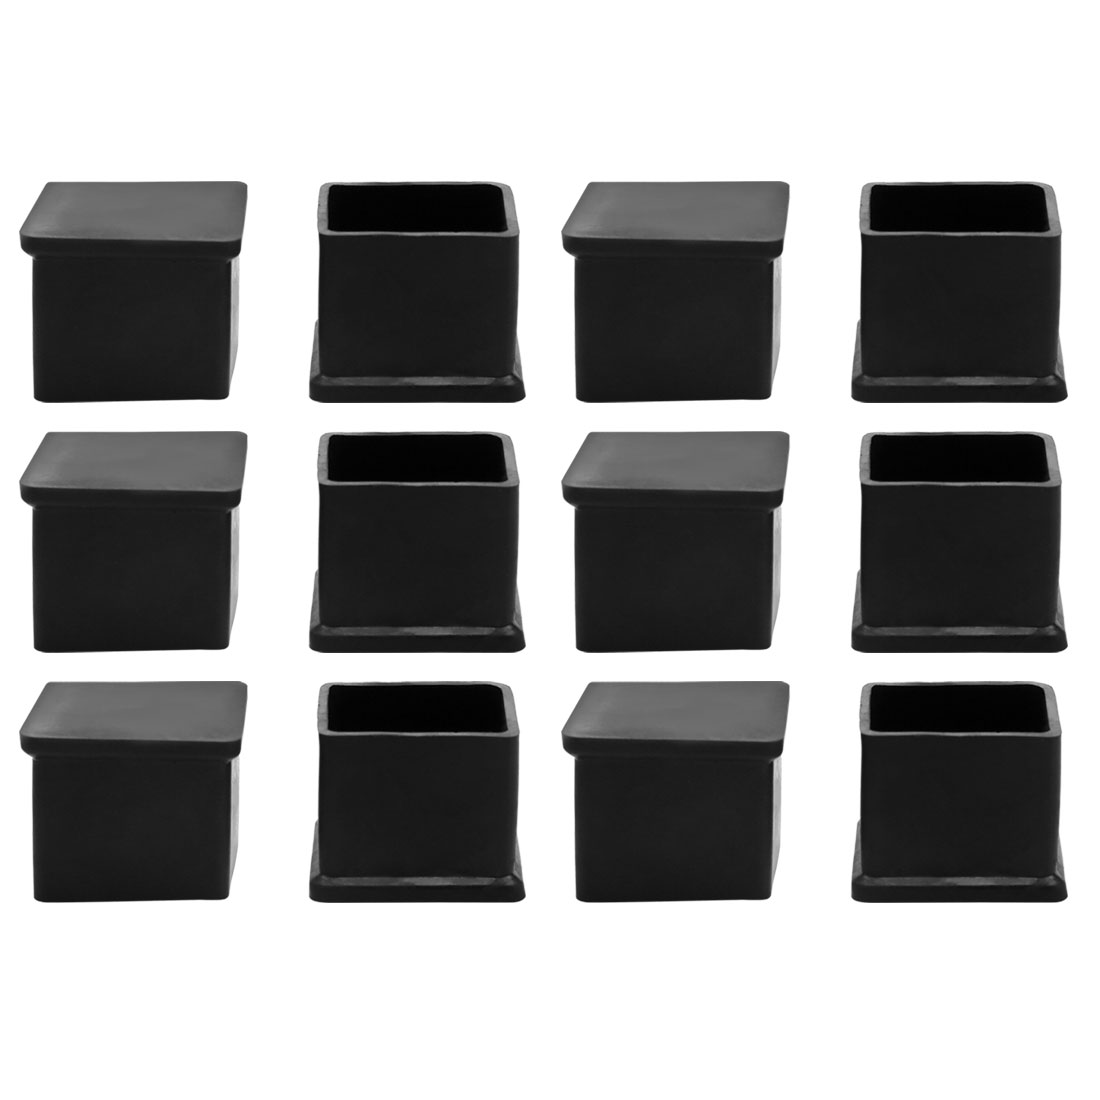 12 Pcs Square Rubber Furniture Table Foot Leg Cover Pad Floor Protector 25mm x 25mm